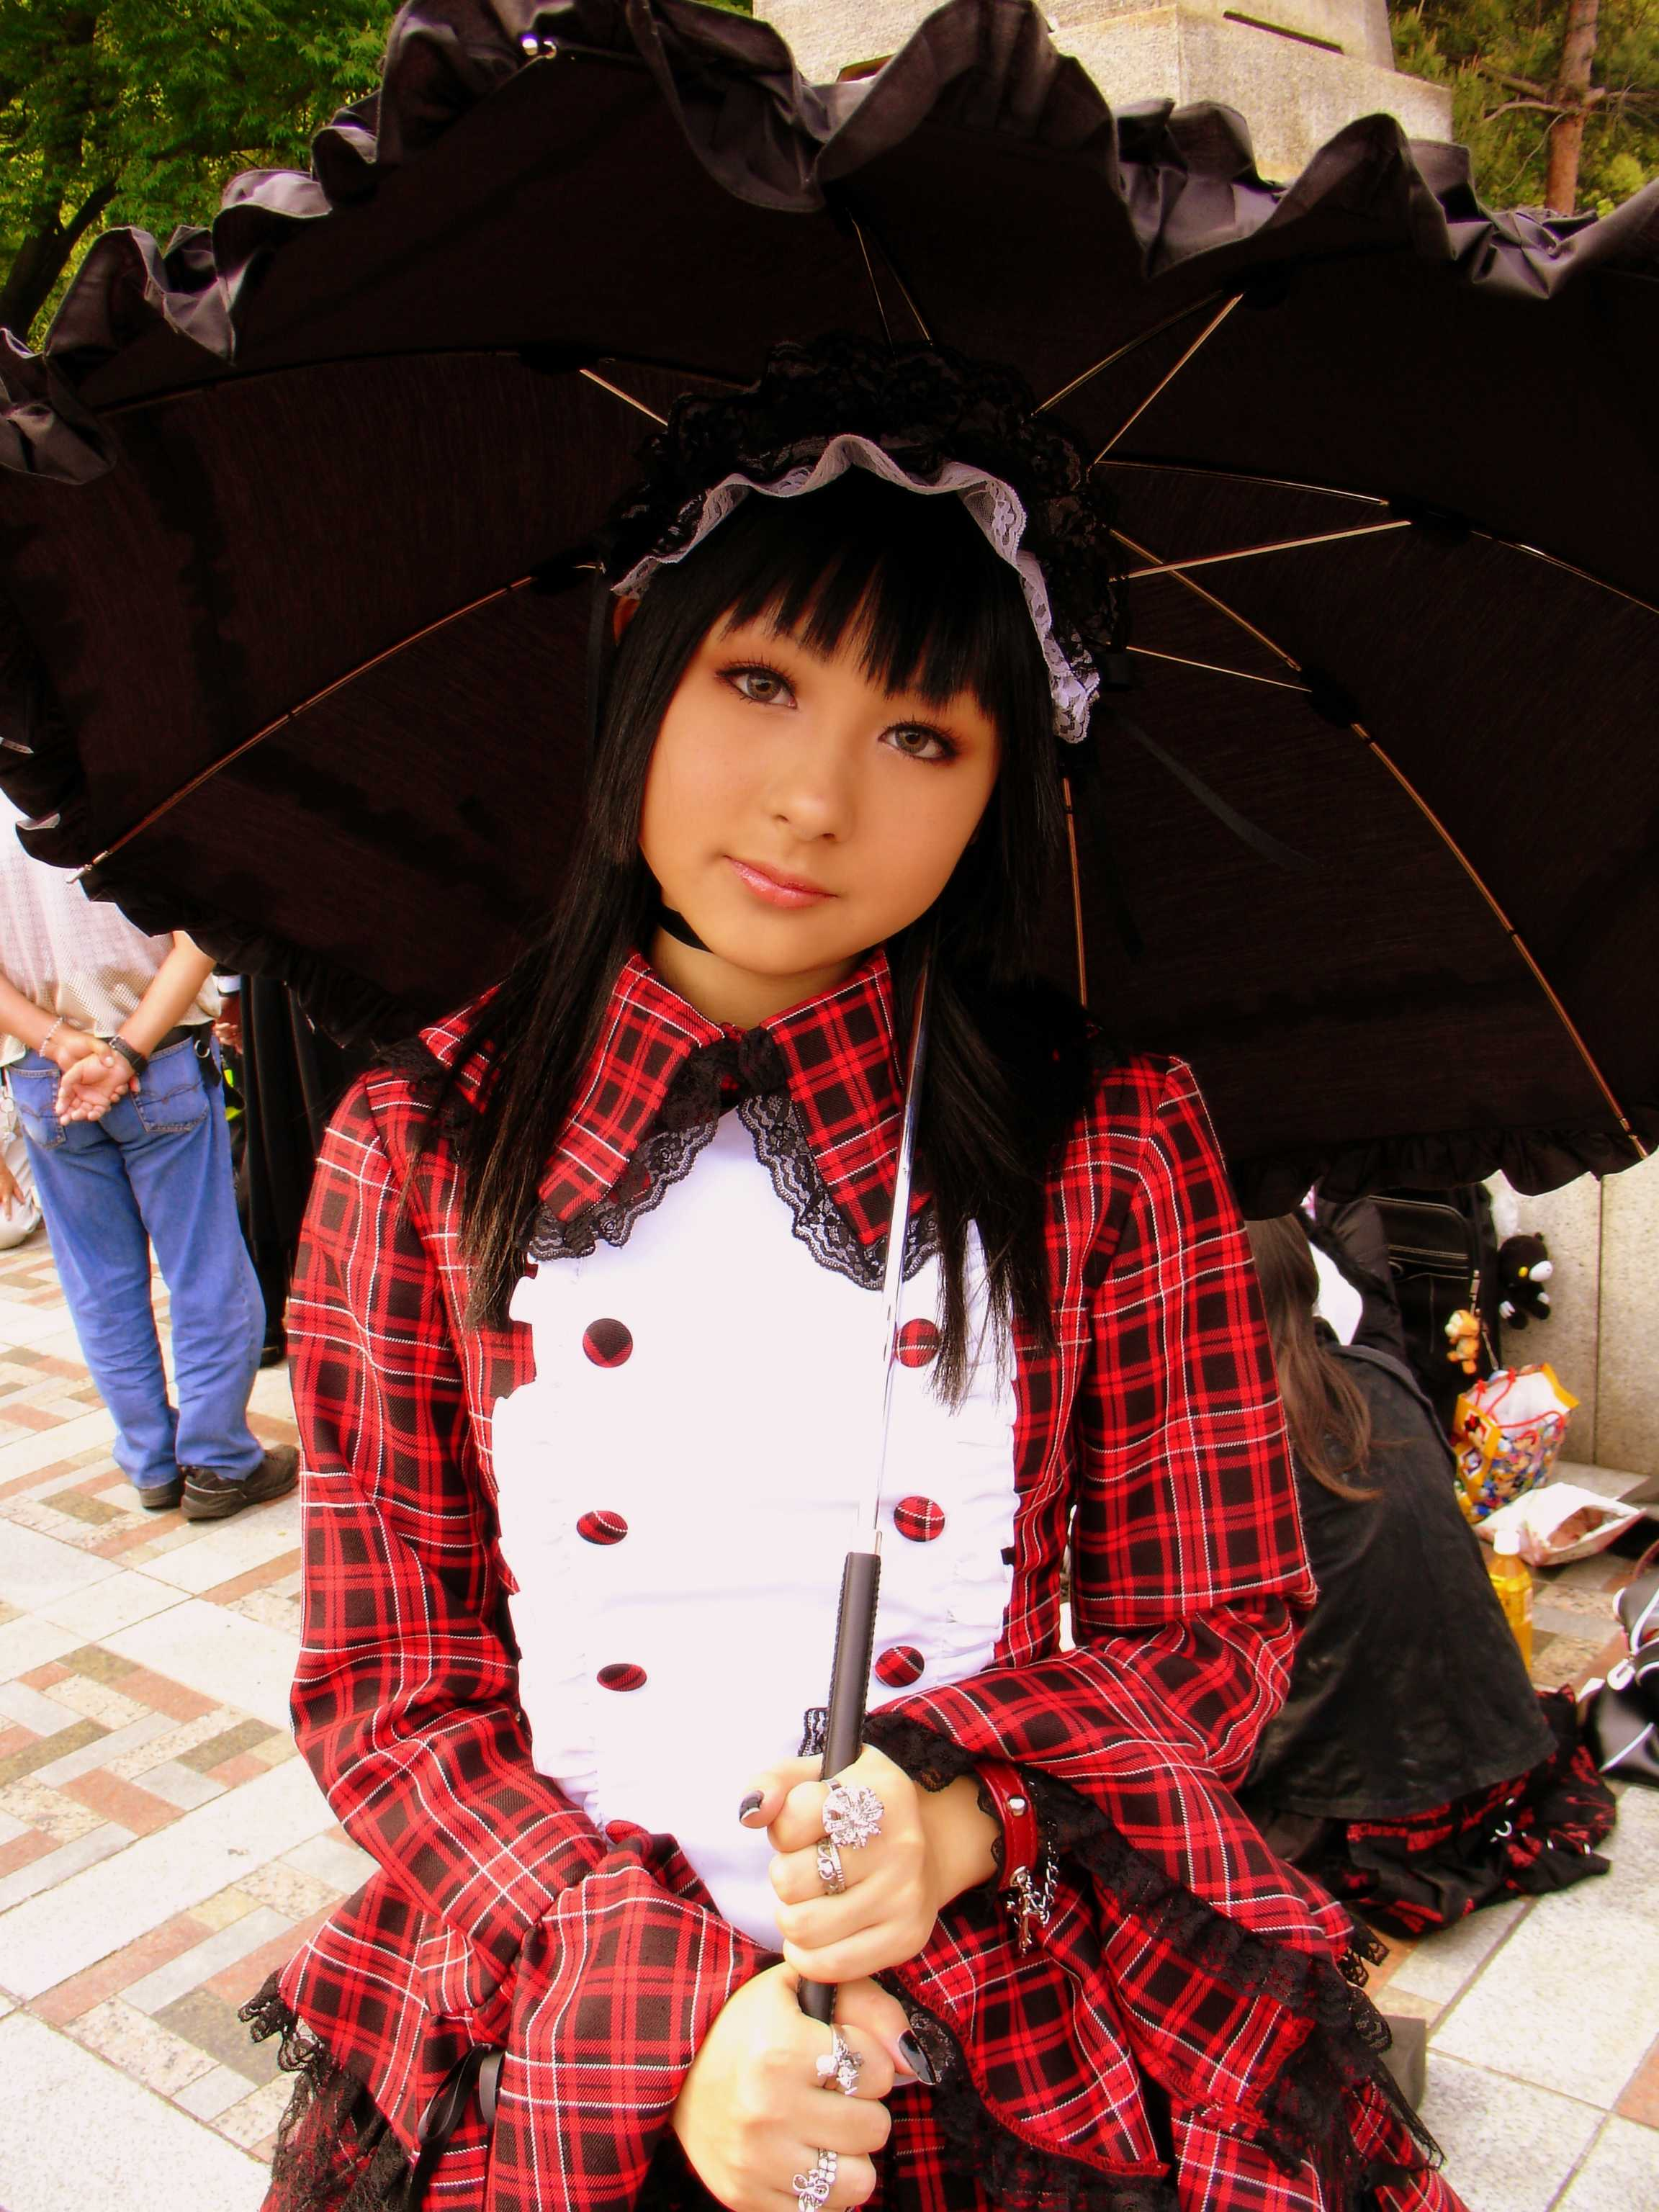 filea girl with a lolita fashionjpg wikimedia commons